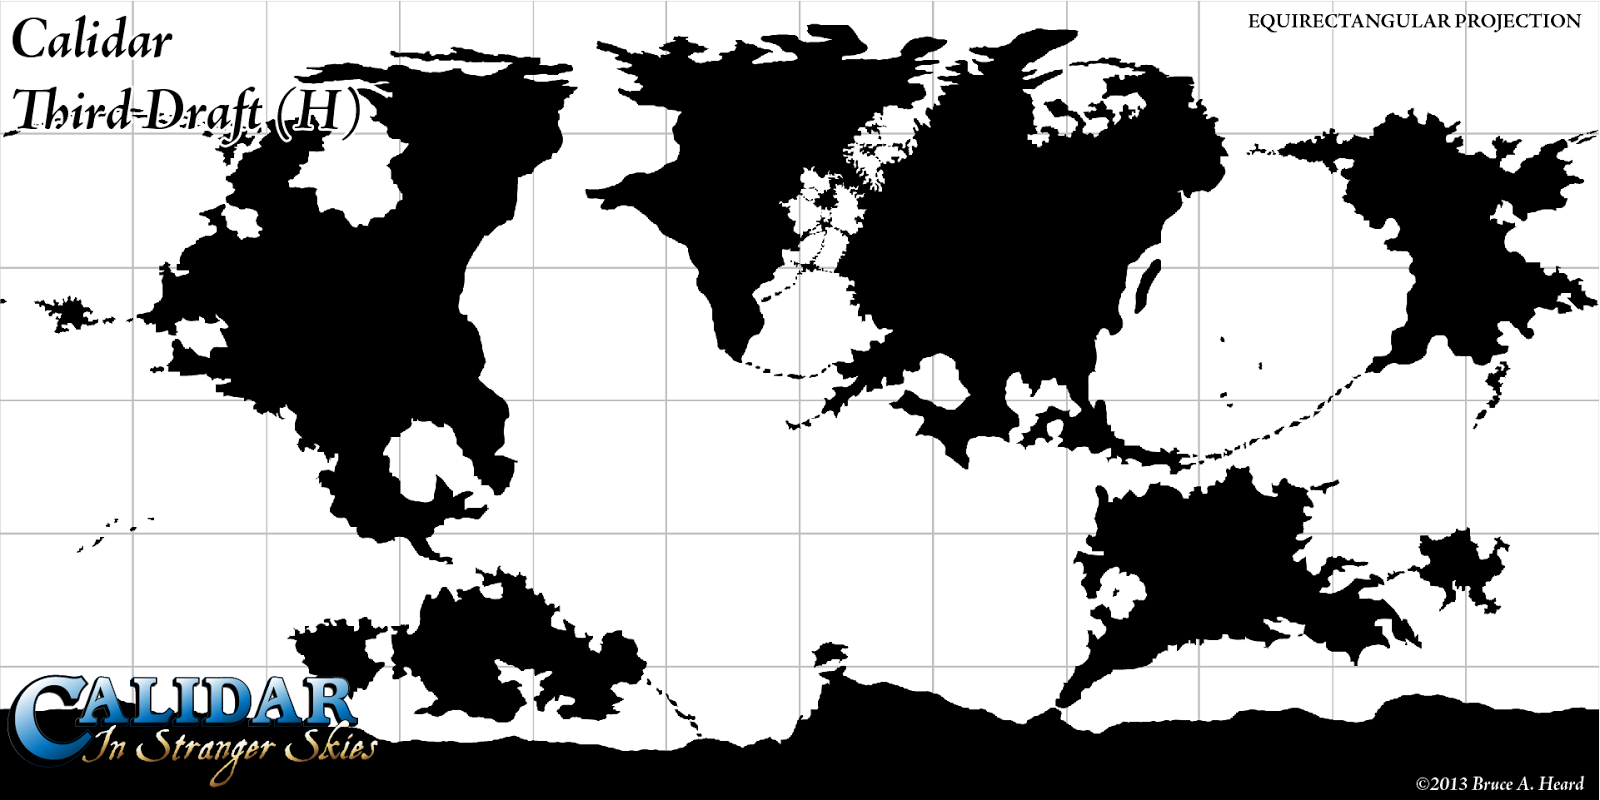 The cartography of thorfinn tait world building continental the world of calidar third draft world map equirectangular projection gumiabroncs Images